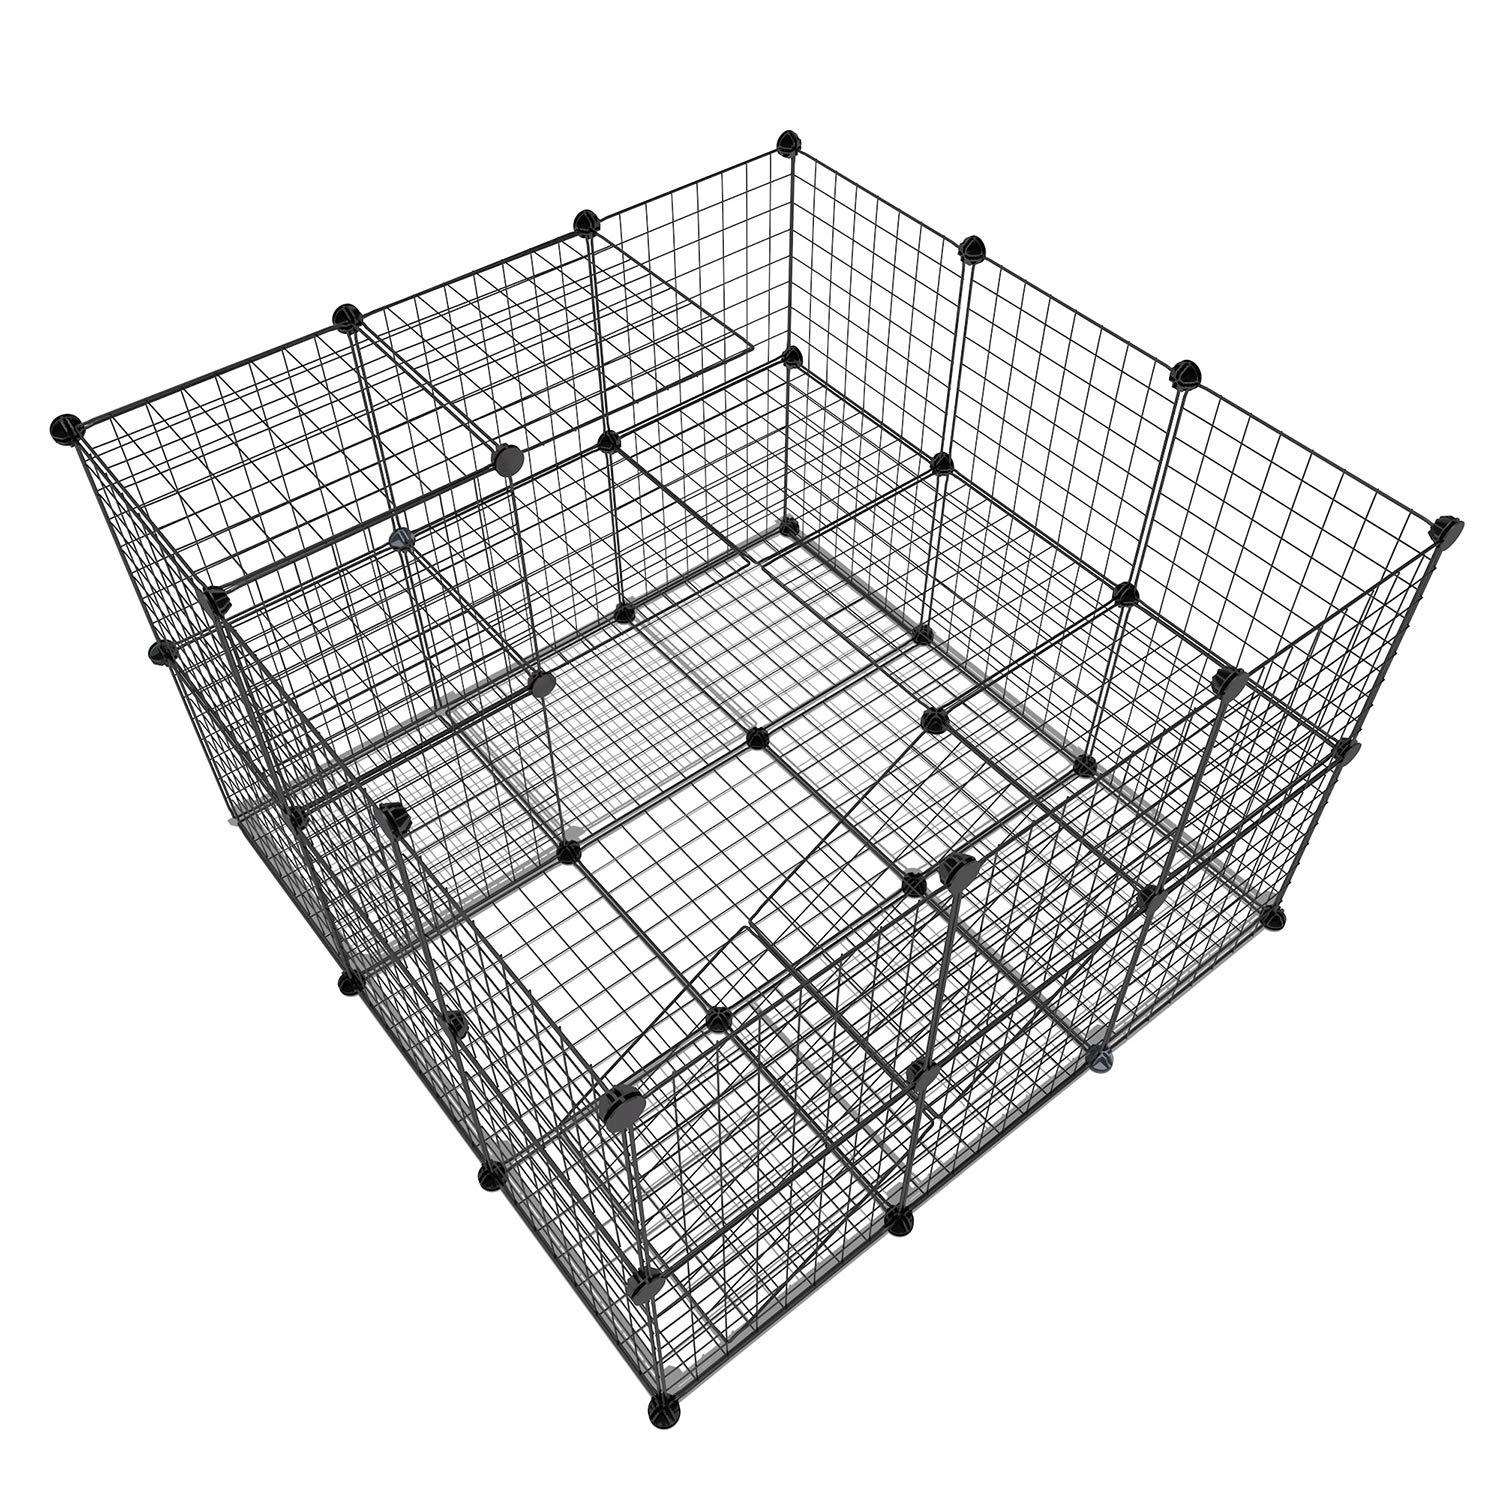 Tespo Pet Playpen Small Animal Cage Indoor Portable Metal Wire Yard Fence for Small Animals Rabbits Kennel Crate Fence Ten Guinea Pigs